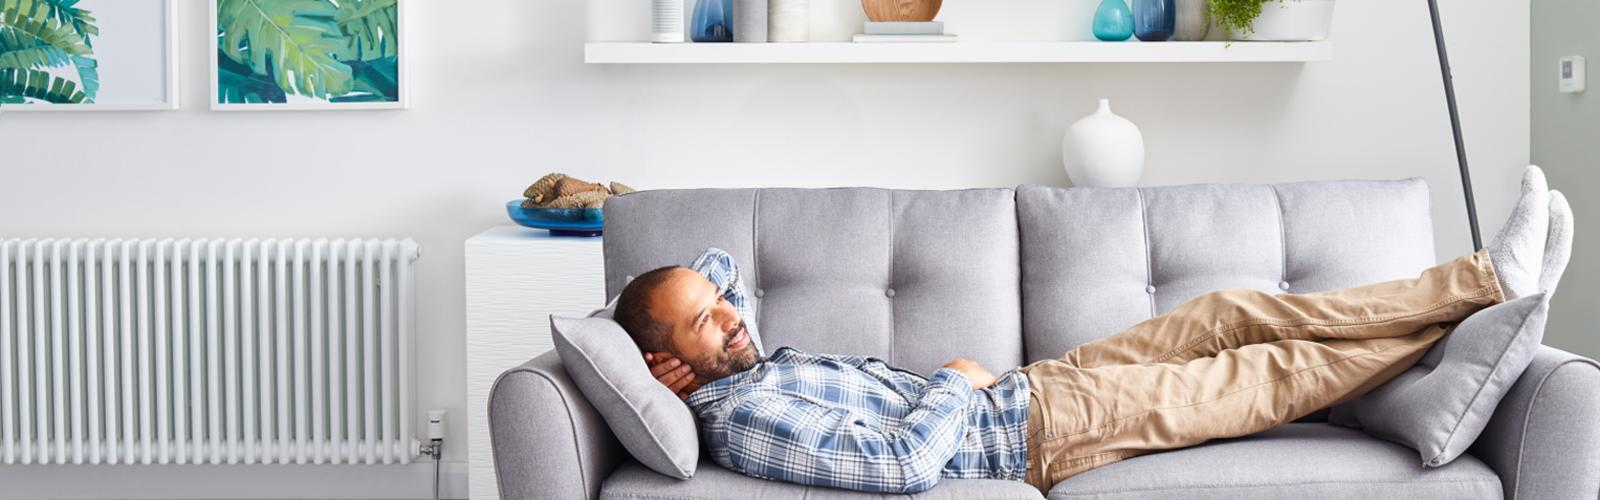 man relaxing with smart heating on